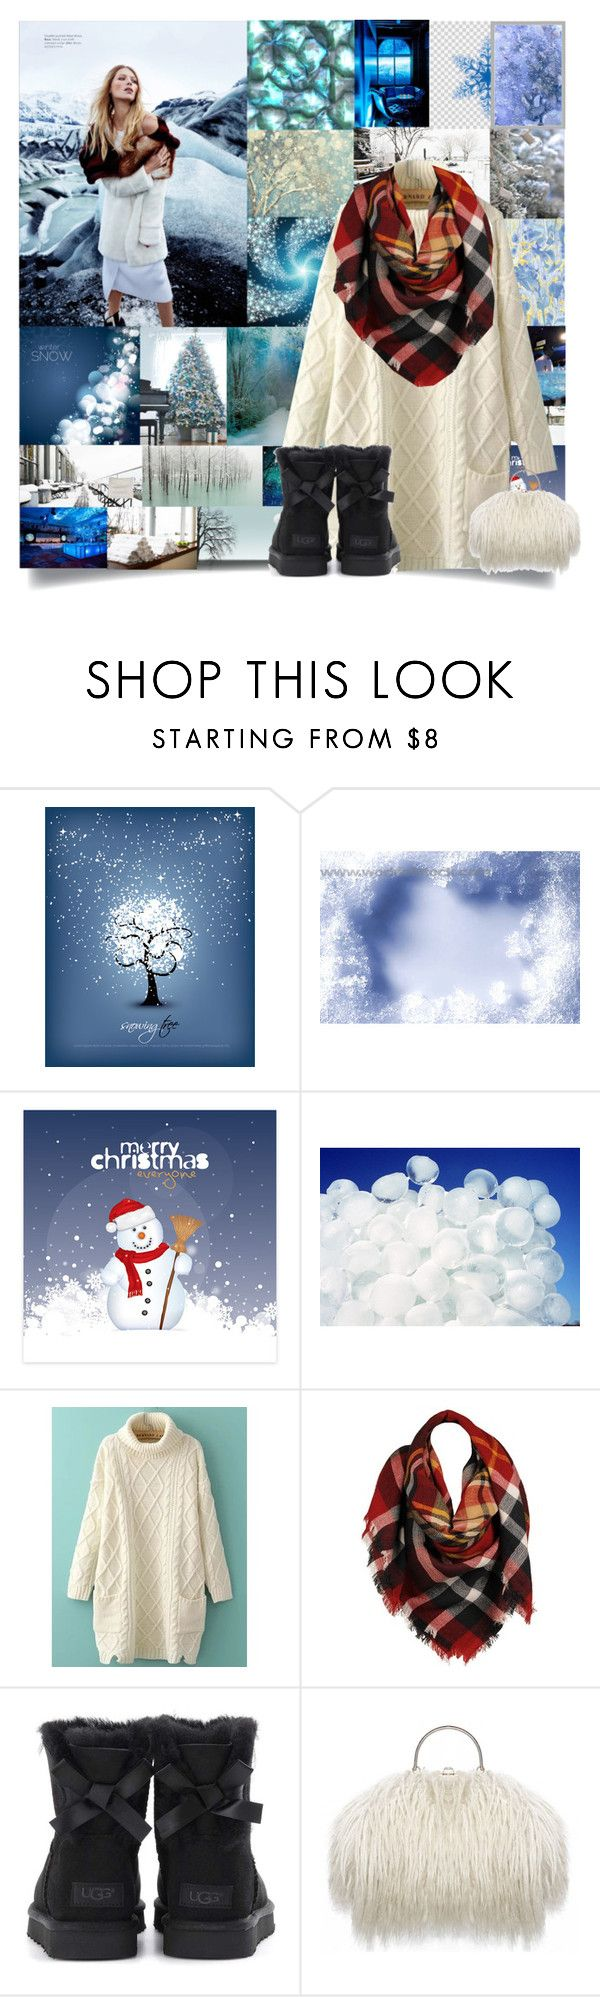 """""""❄️Winter Wonderland❄️"""" by cheyenne-muter ❤ liked on Polyvore featuring Disney, GALA, INC International Concepts, mark., Tema, WithChic, Sylvia Alexander, UGG, Winter and snow"""